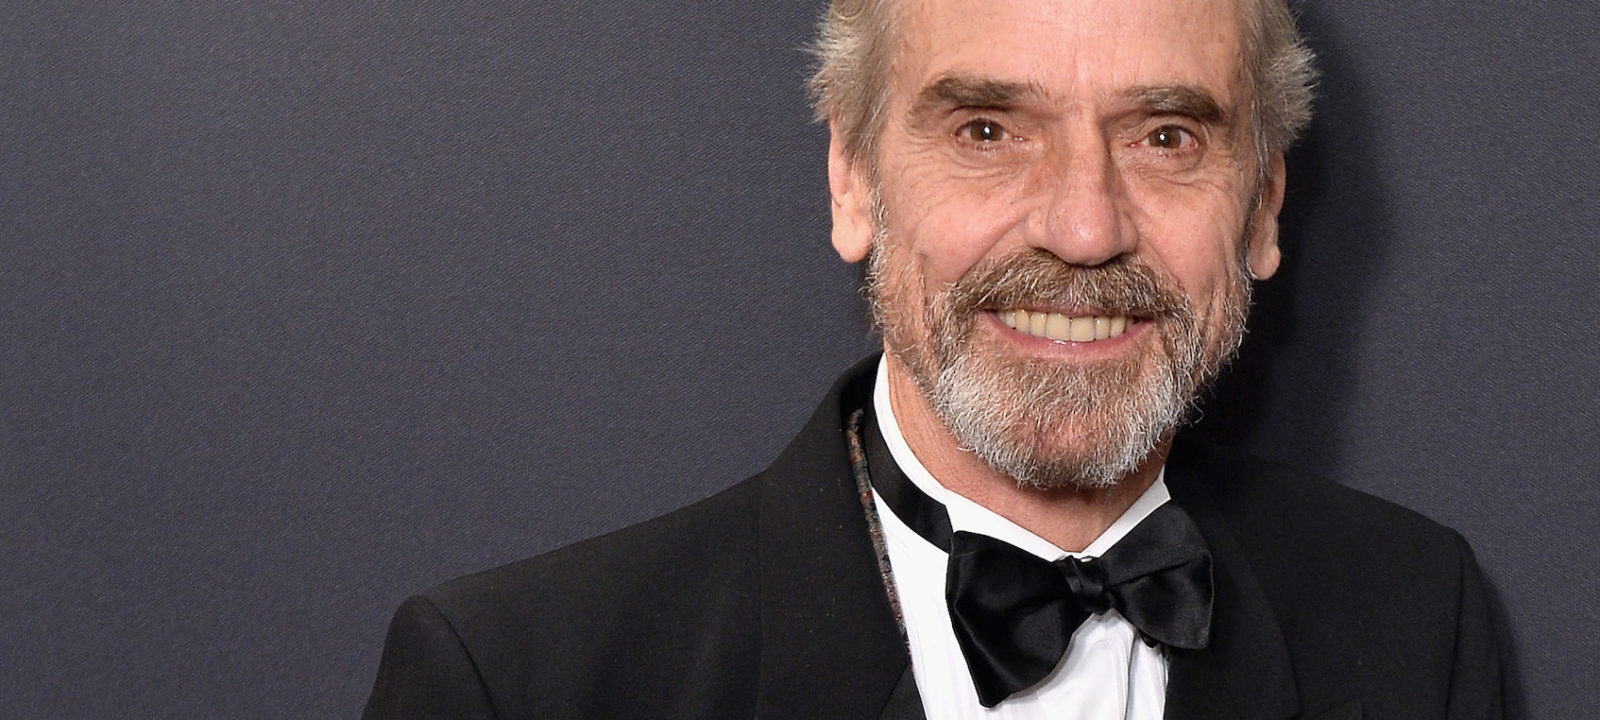 Casting news: Jeremy Irons to Star in Comic Book Series ...  Casting news: J...